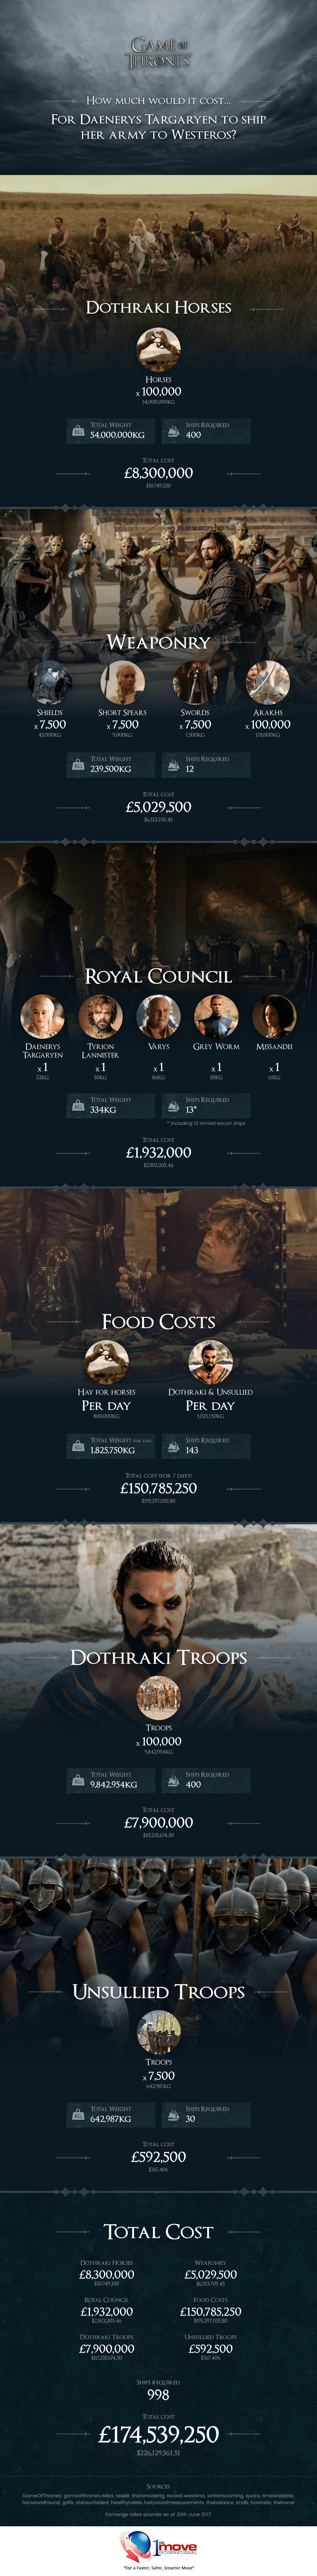 The Cost Of Shipping Khaleesi's Army - Infographic